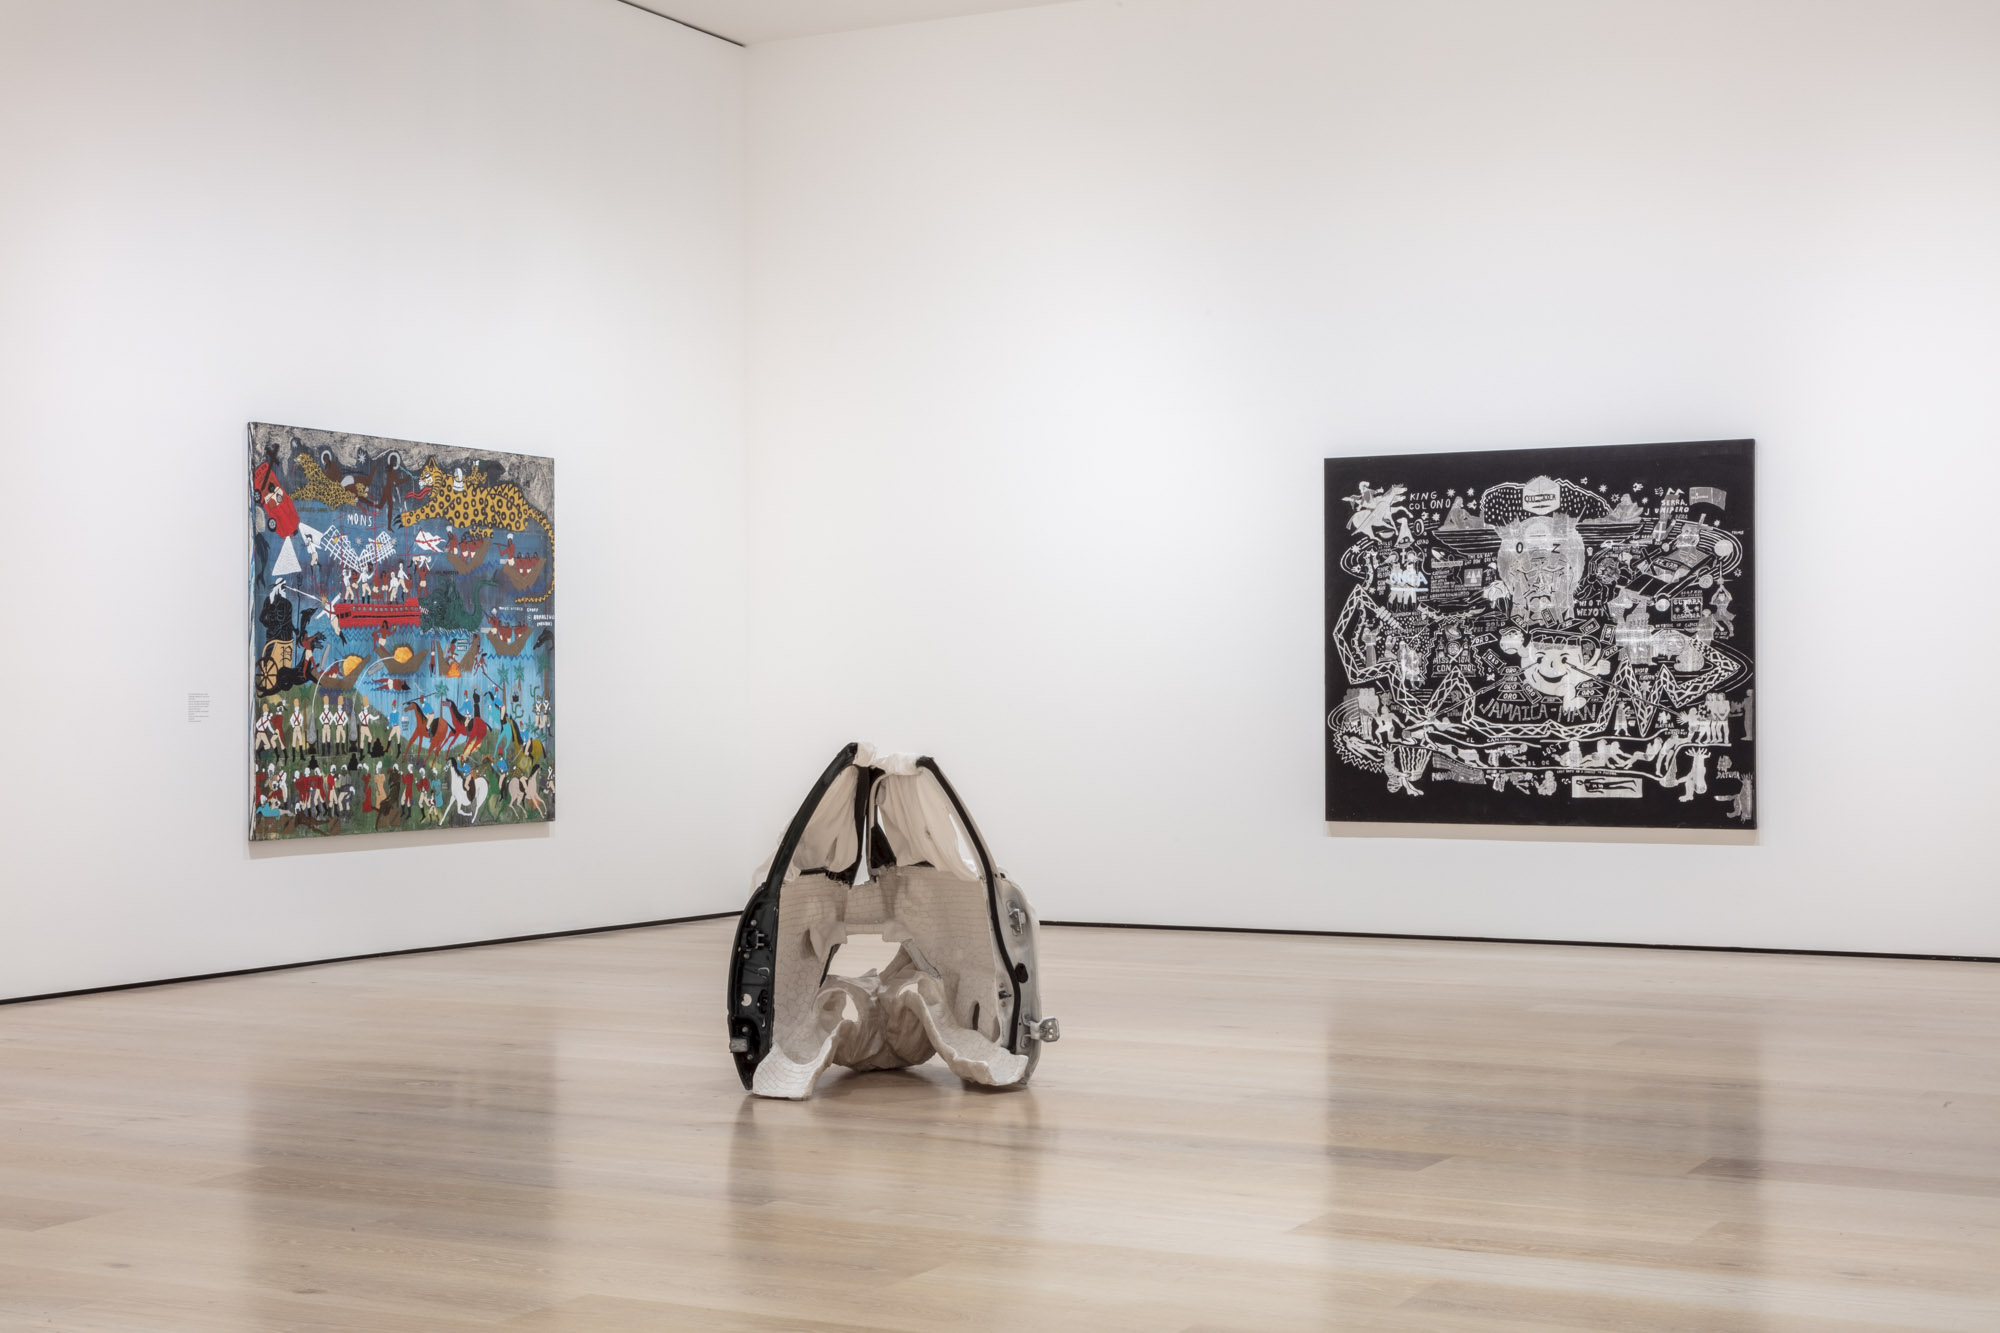 """An installation view of Ann Greene Kelly and Umar Rashid's work at """"Made in L.A. 2020: a version."""" at Hammer Museum, Los Angeles. 